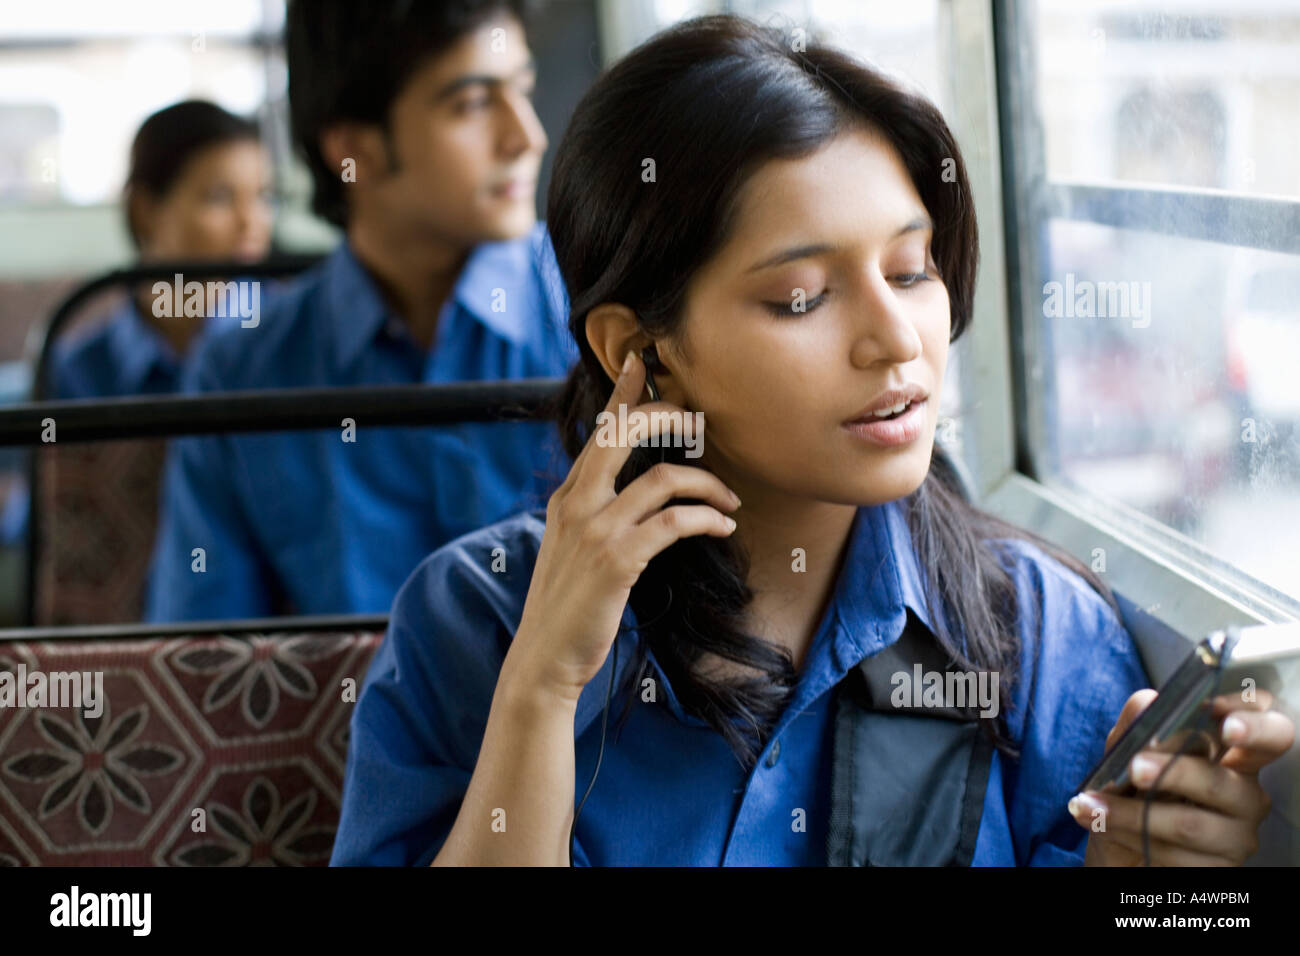 Female student listening to mp3 player sur le bus Photo Stock